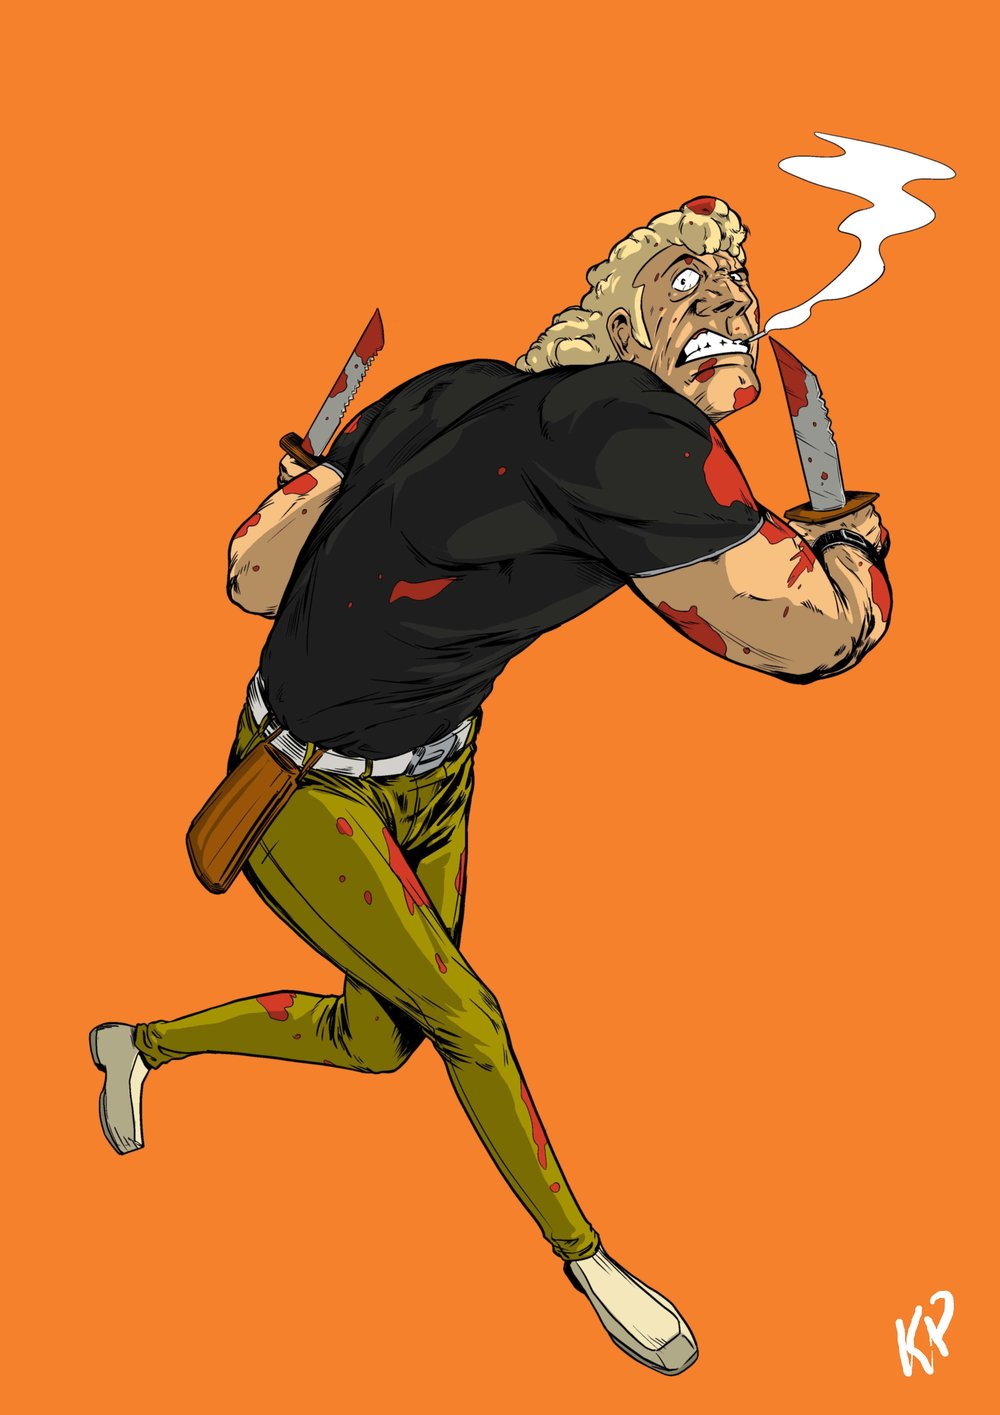 brock samson copy.jpg